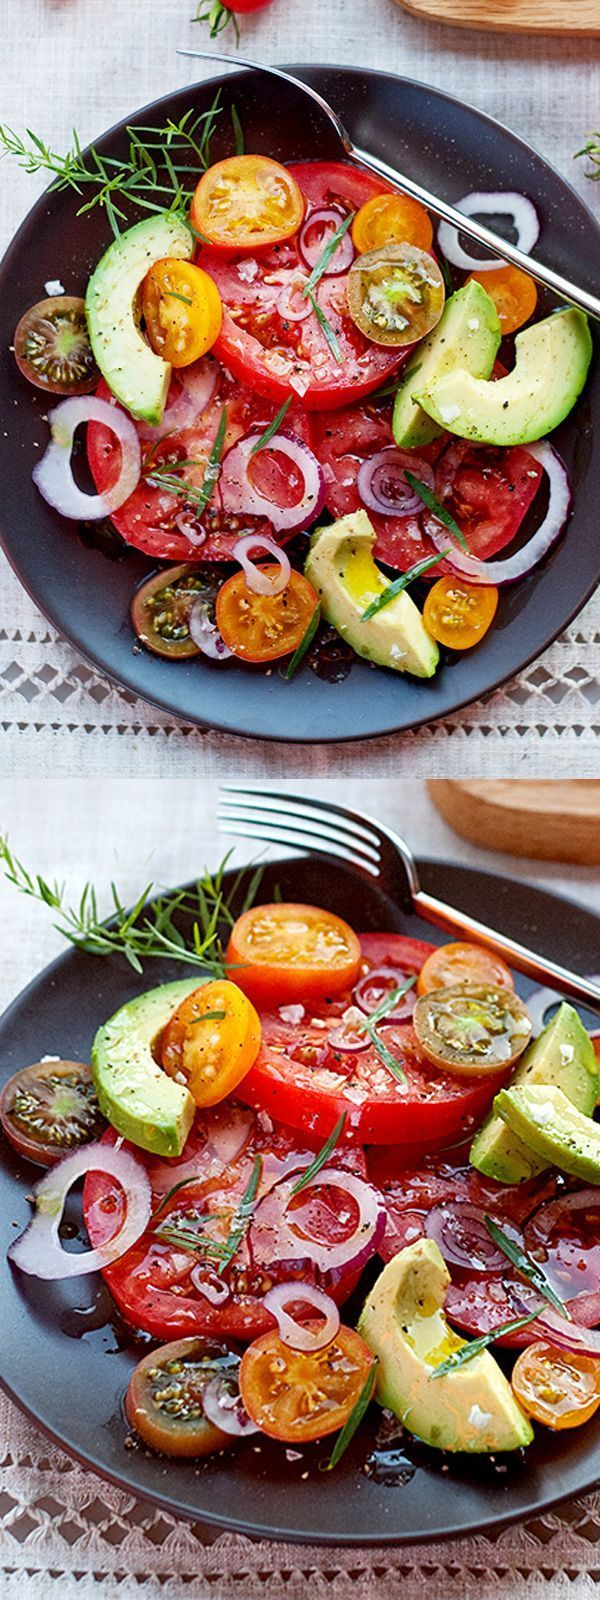 This simple #salad is the perfect solution for garden fresh #tomatoes and creamy #avocado | foodiecrush.com More